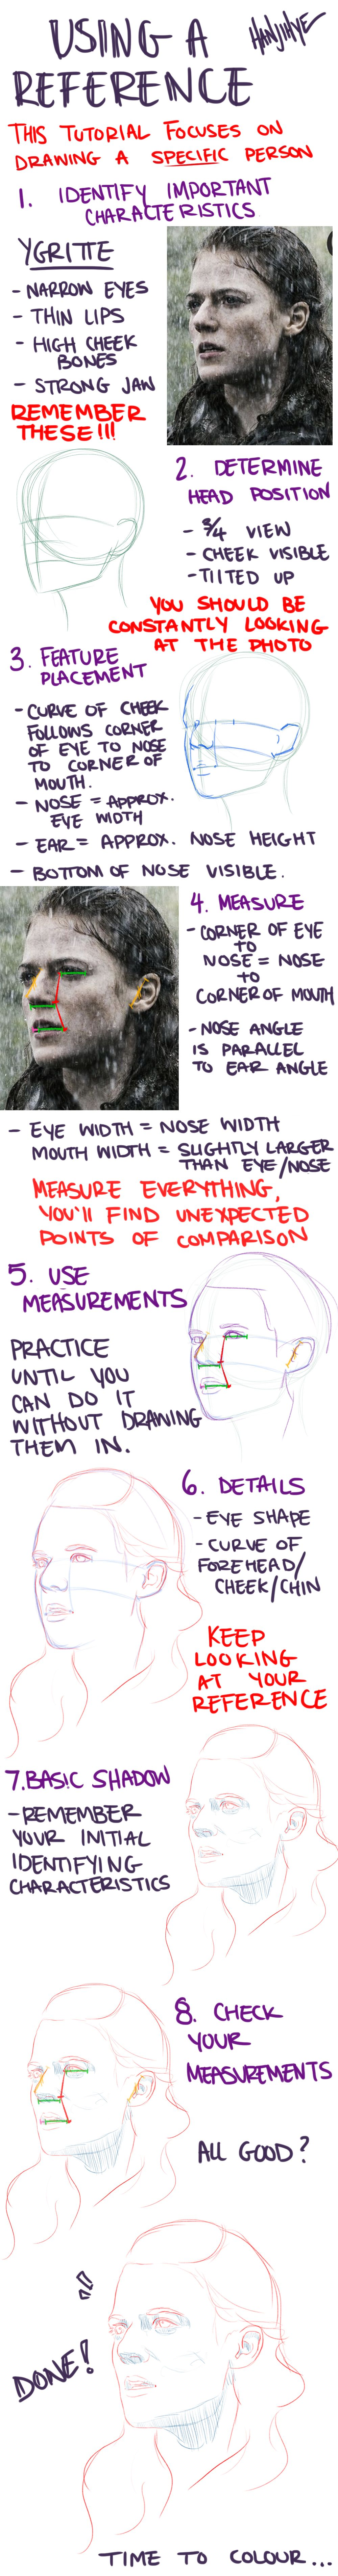 I wish I was better at taking notes from references! I just use them to recreate, this seems really helpful ^^